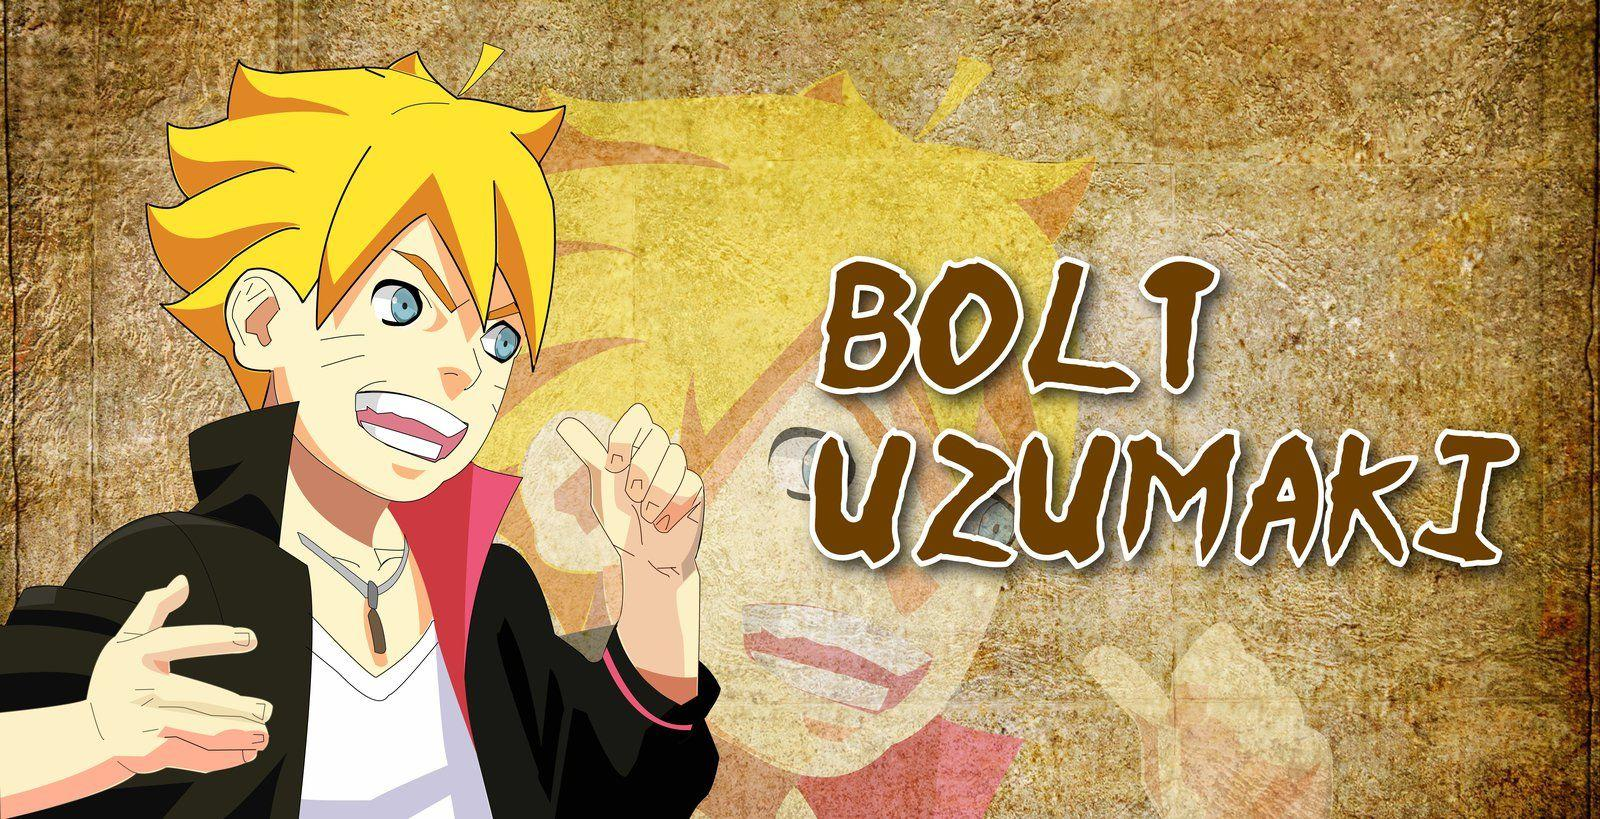 Uzumaki Bolt/Boruto From Naruto. by Blazearx